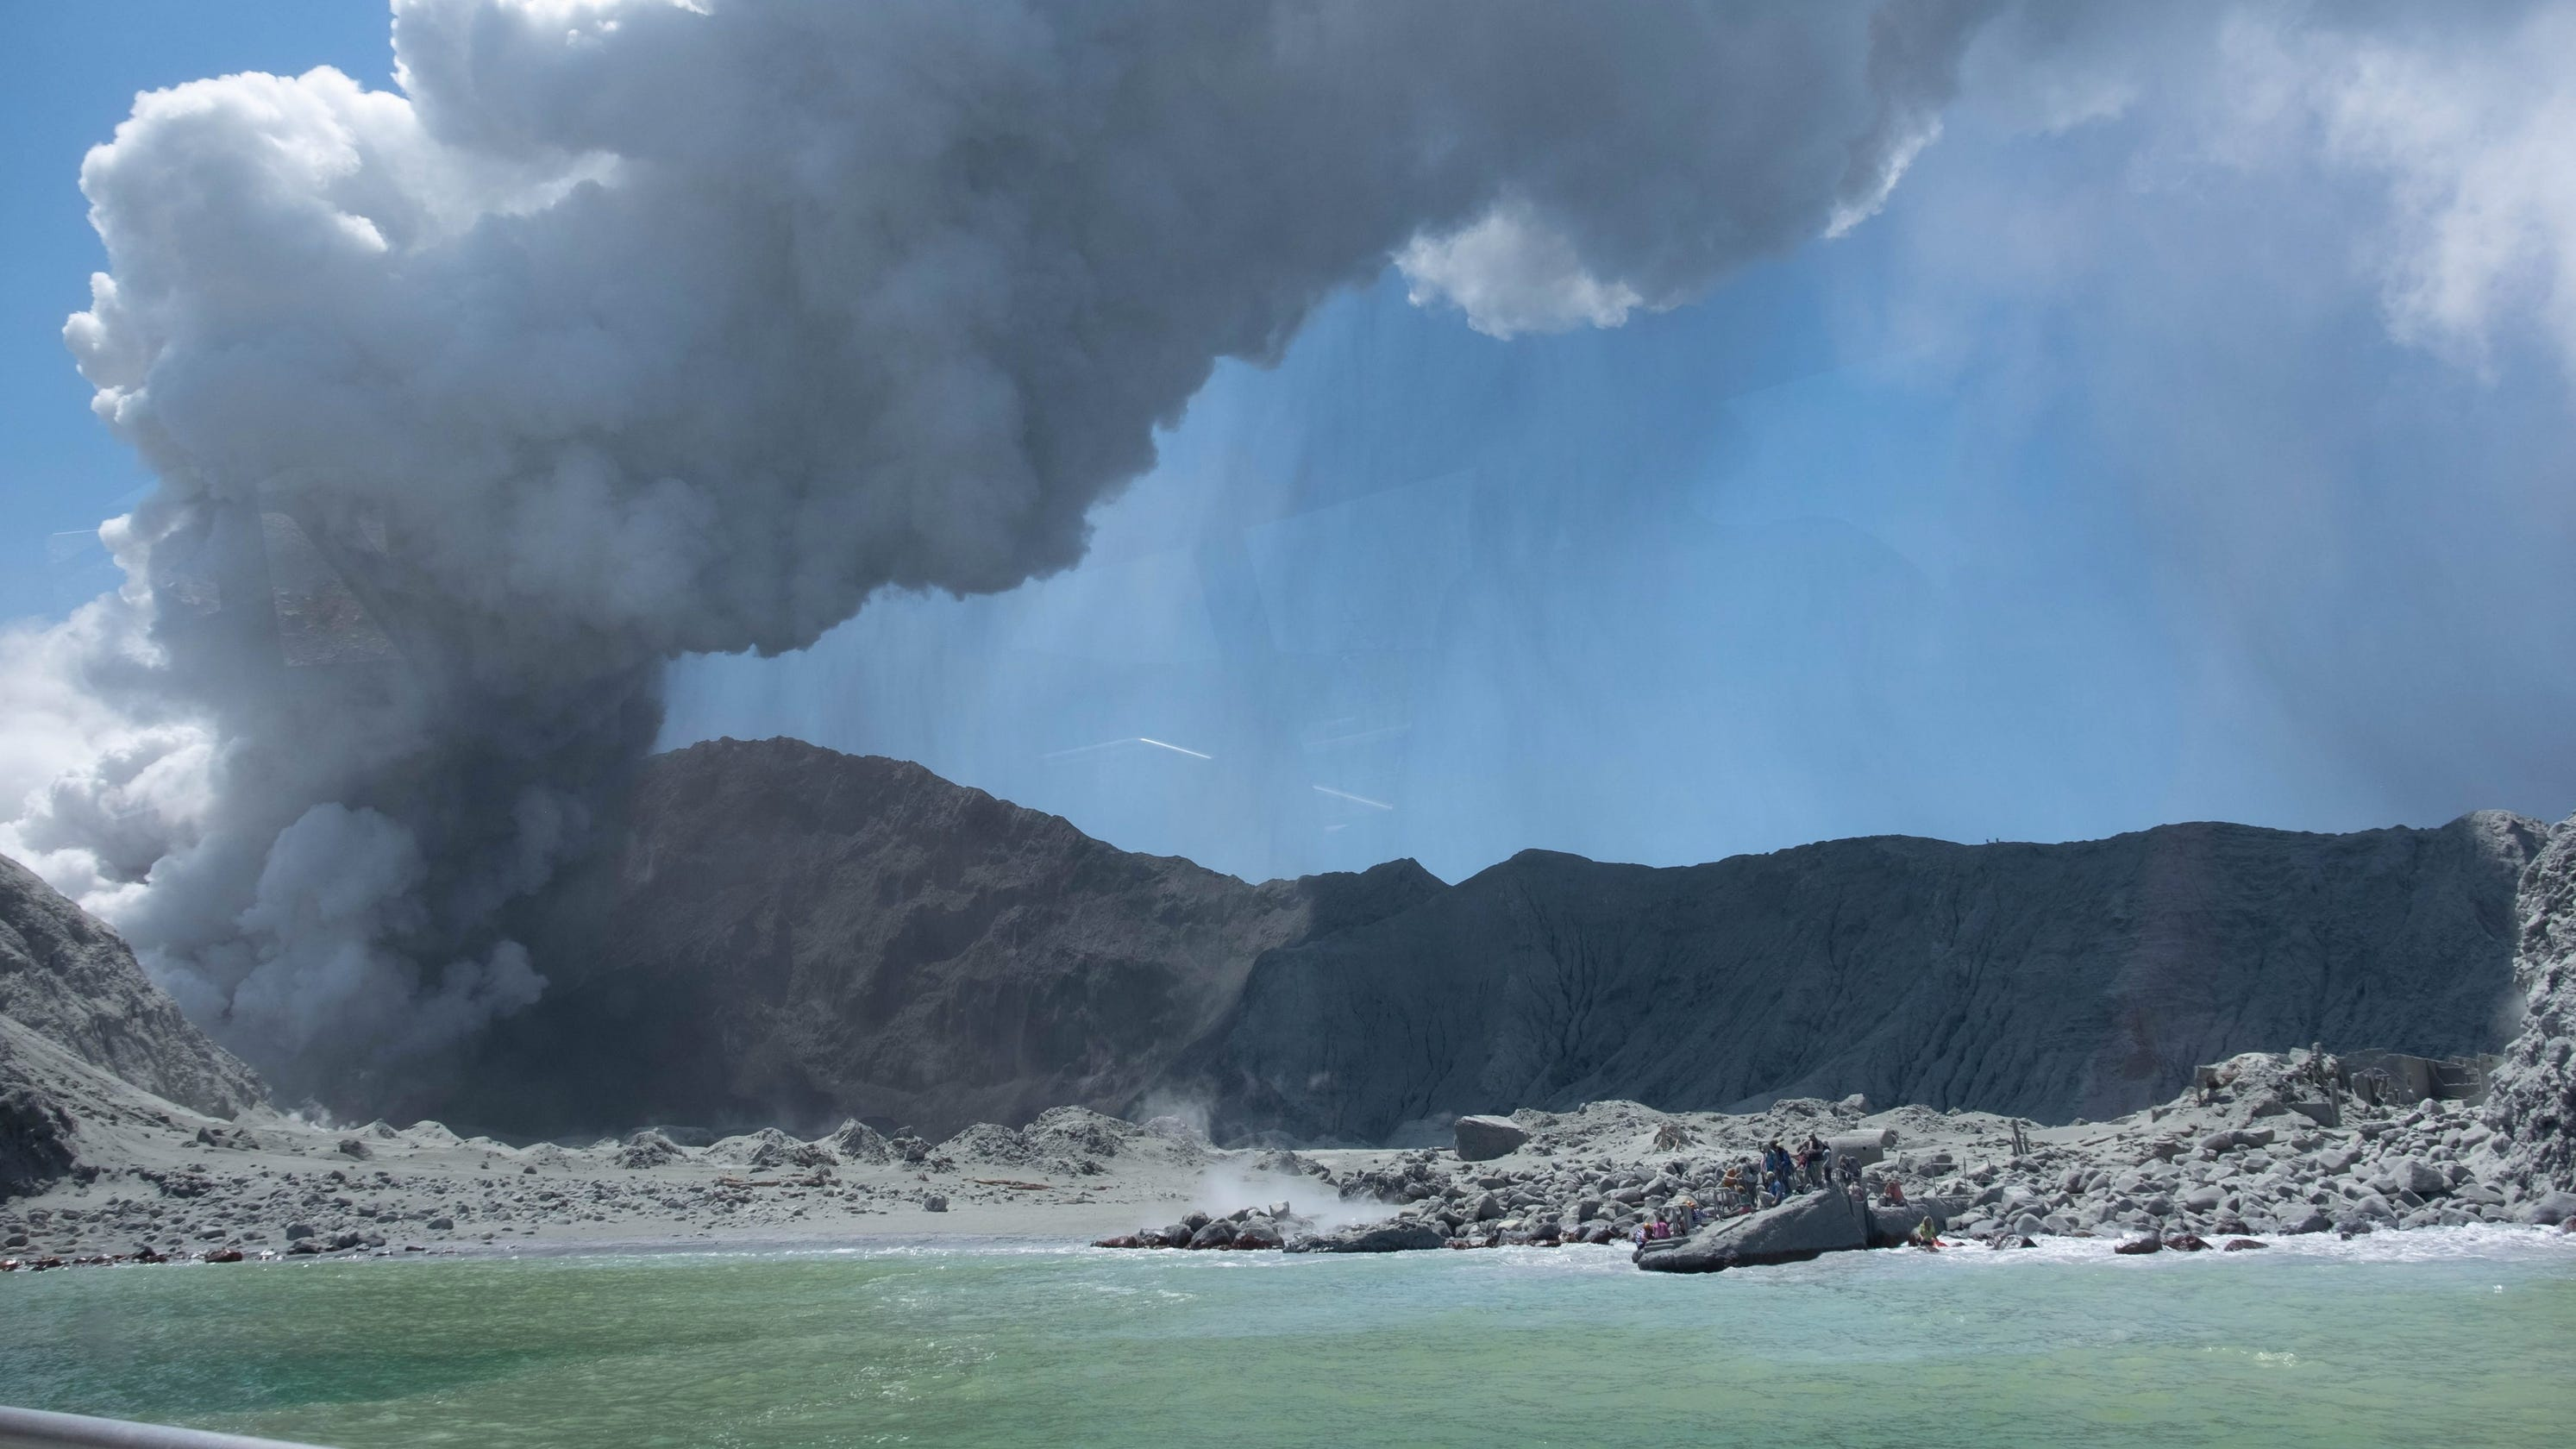 New Zealand volcano eruption: At least 5 confirmed dead, 'no signs of life' remain on the island, police say thumbnail